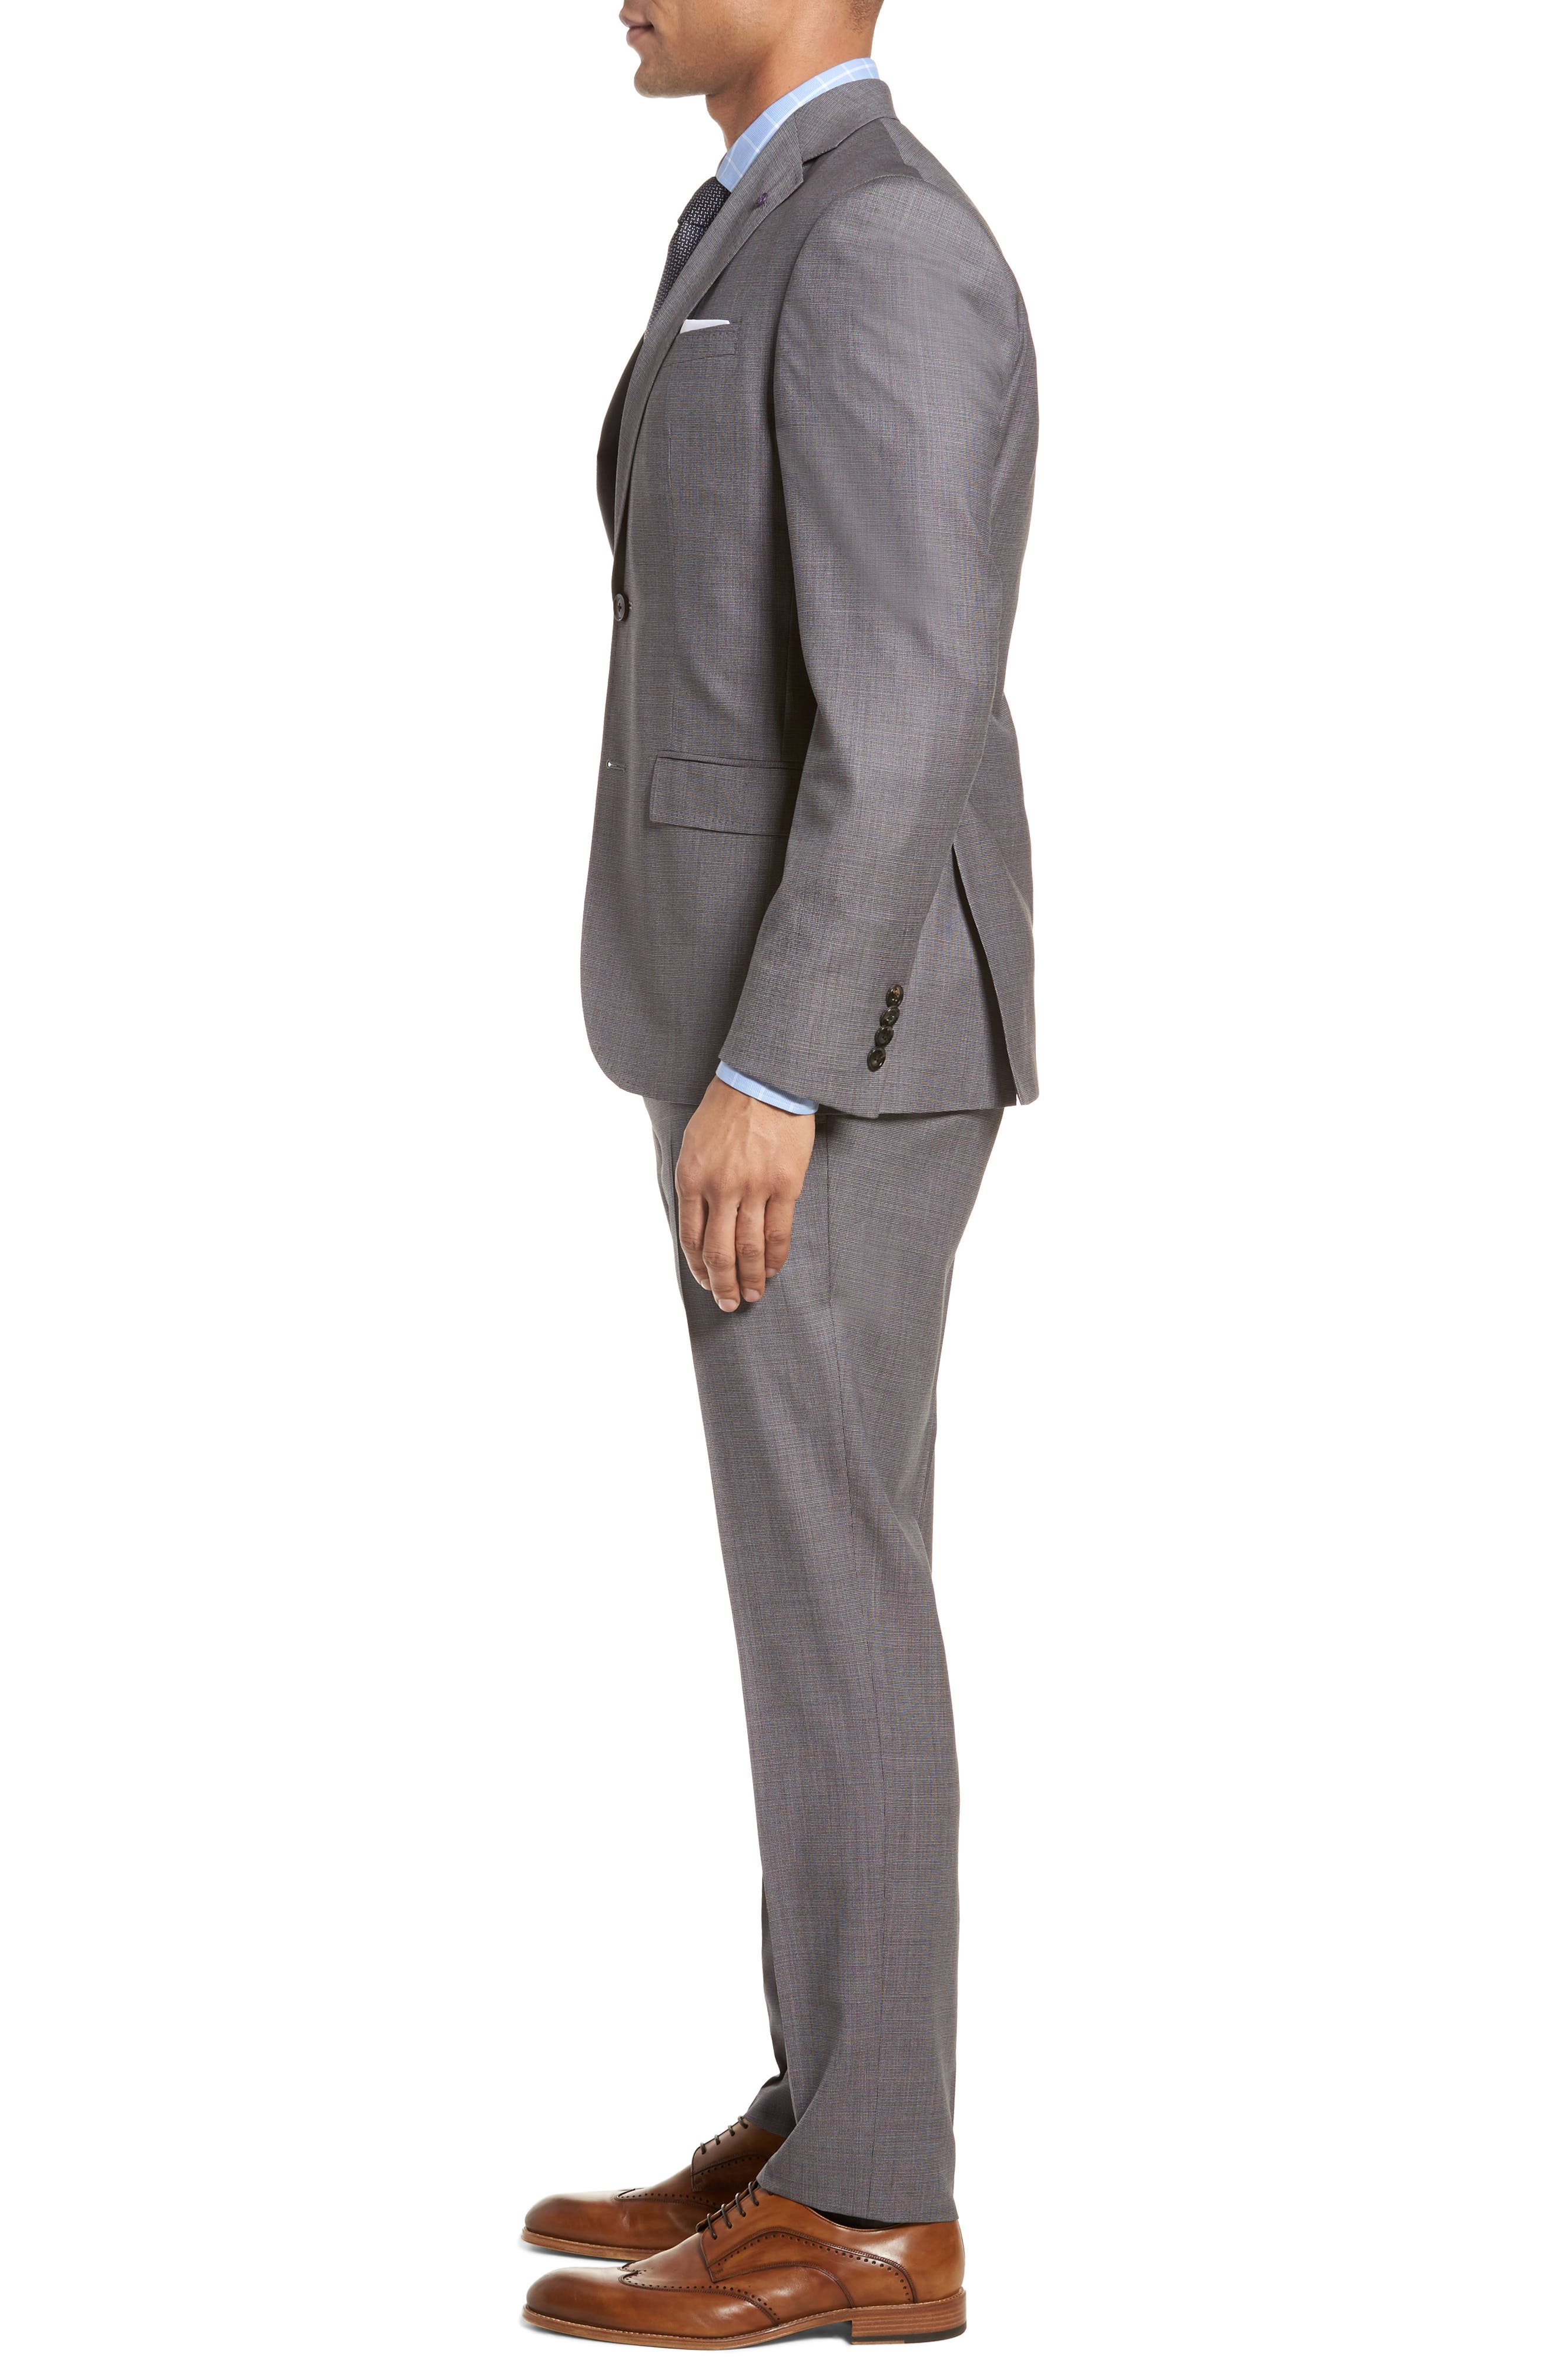 Roger Extra Slim Fit Solid Wool Suit,                             Alternate thumbnail 3, color,                             Taupe